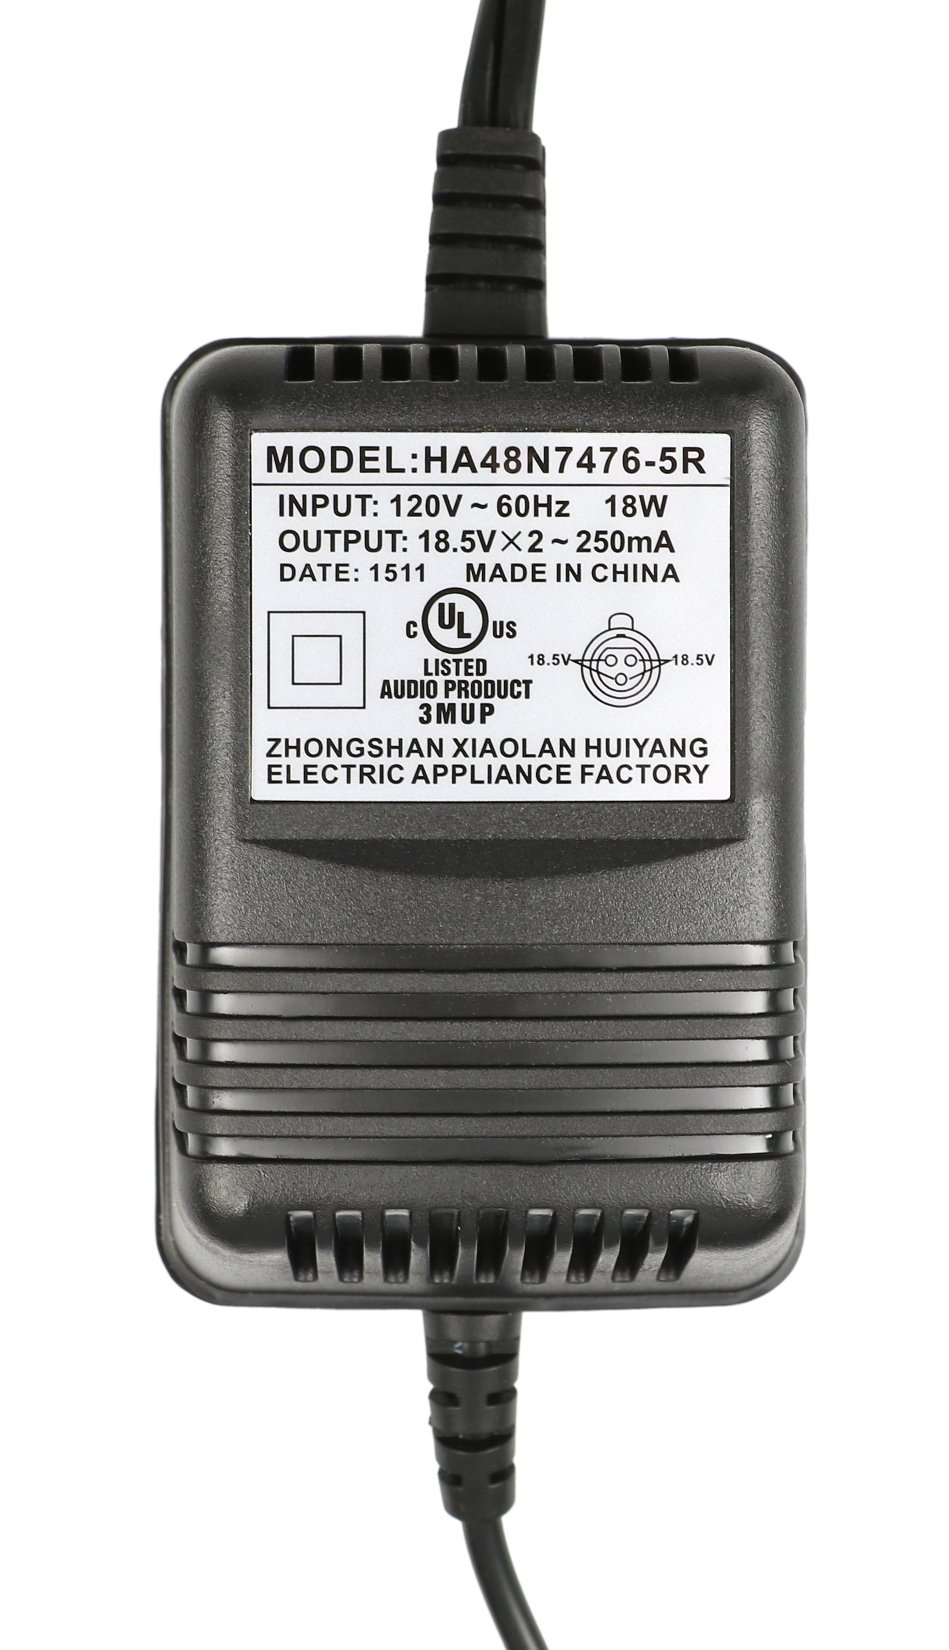 Power Adapter for 402, 802, VLZ 3 and 4